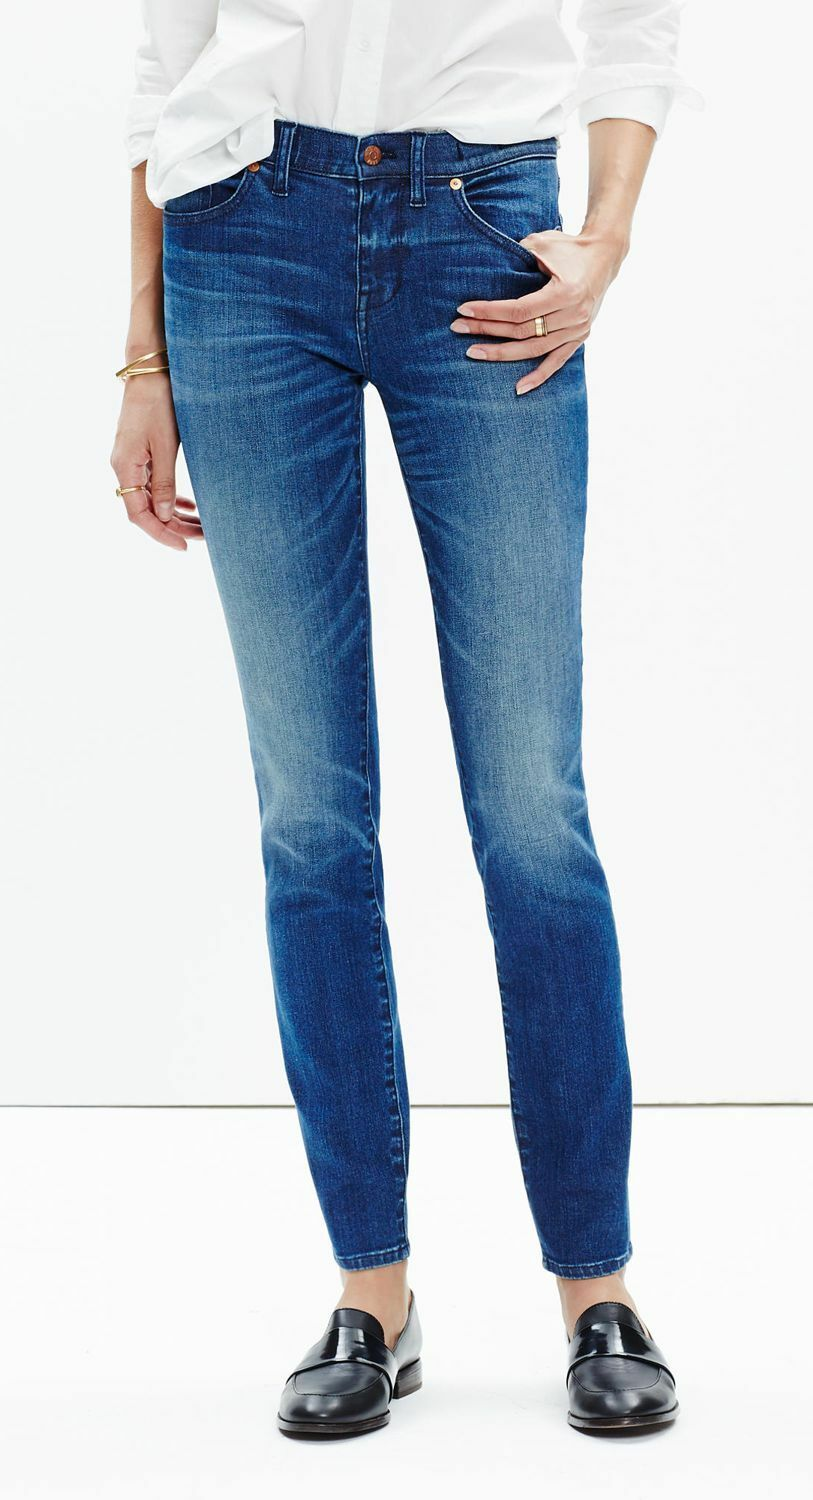 J. Crew Madewell 8  Skinny Jeans Sunnyside Wash EUC Retailed New  128 SOLD OUT